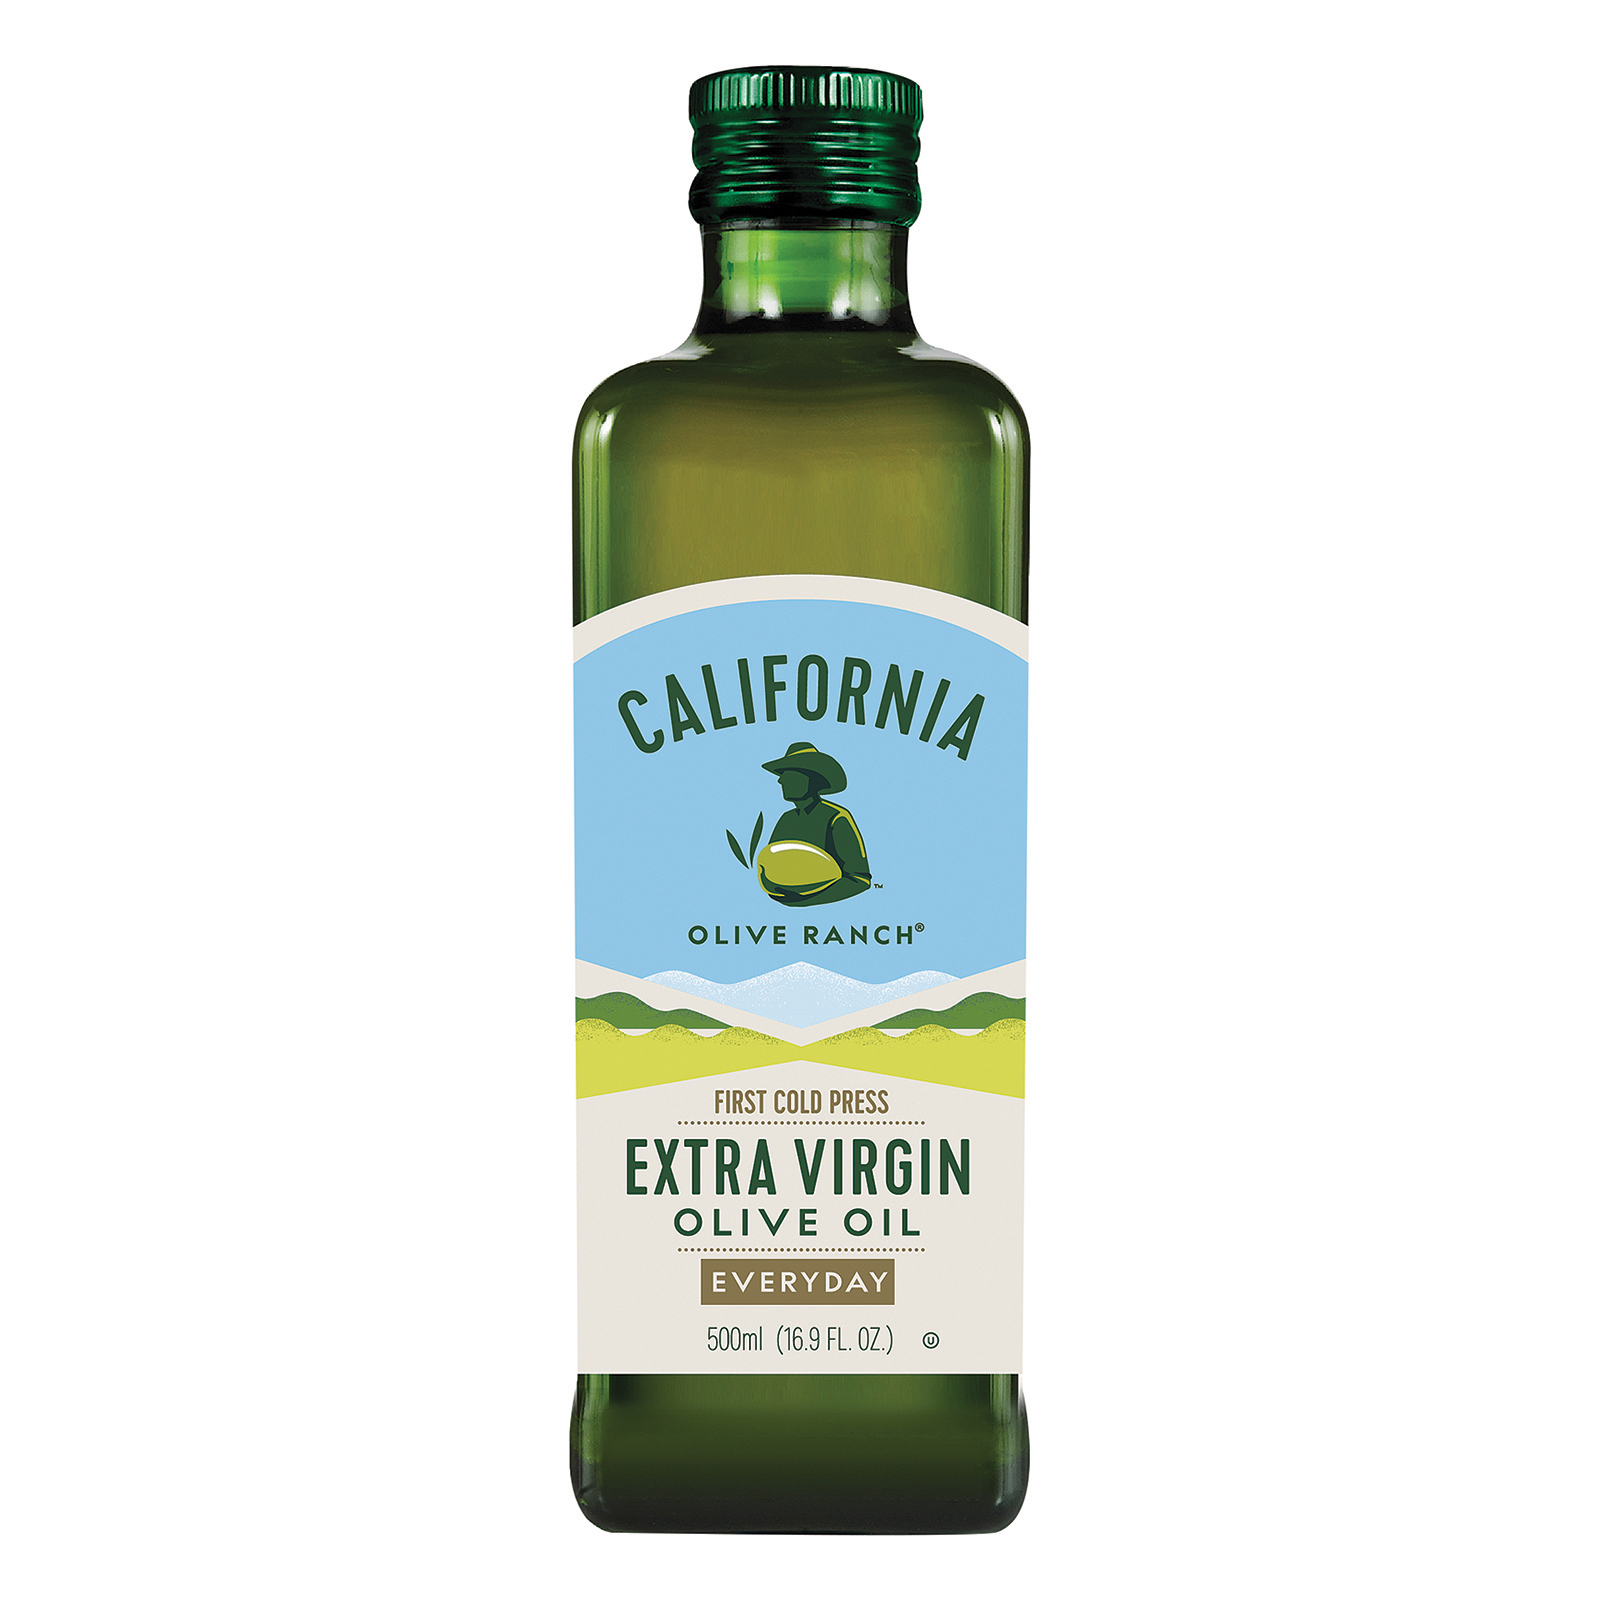 California Olive Ranch Extra Virgin Olive Oil - Everyday - Case of 12 - 16.9 fl oz.